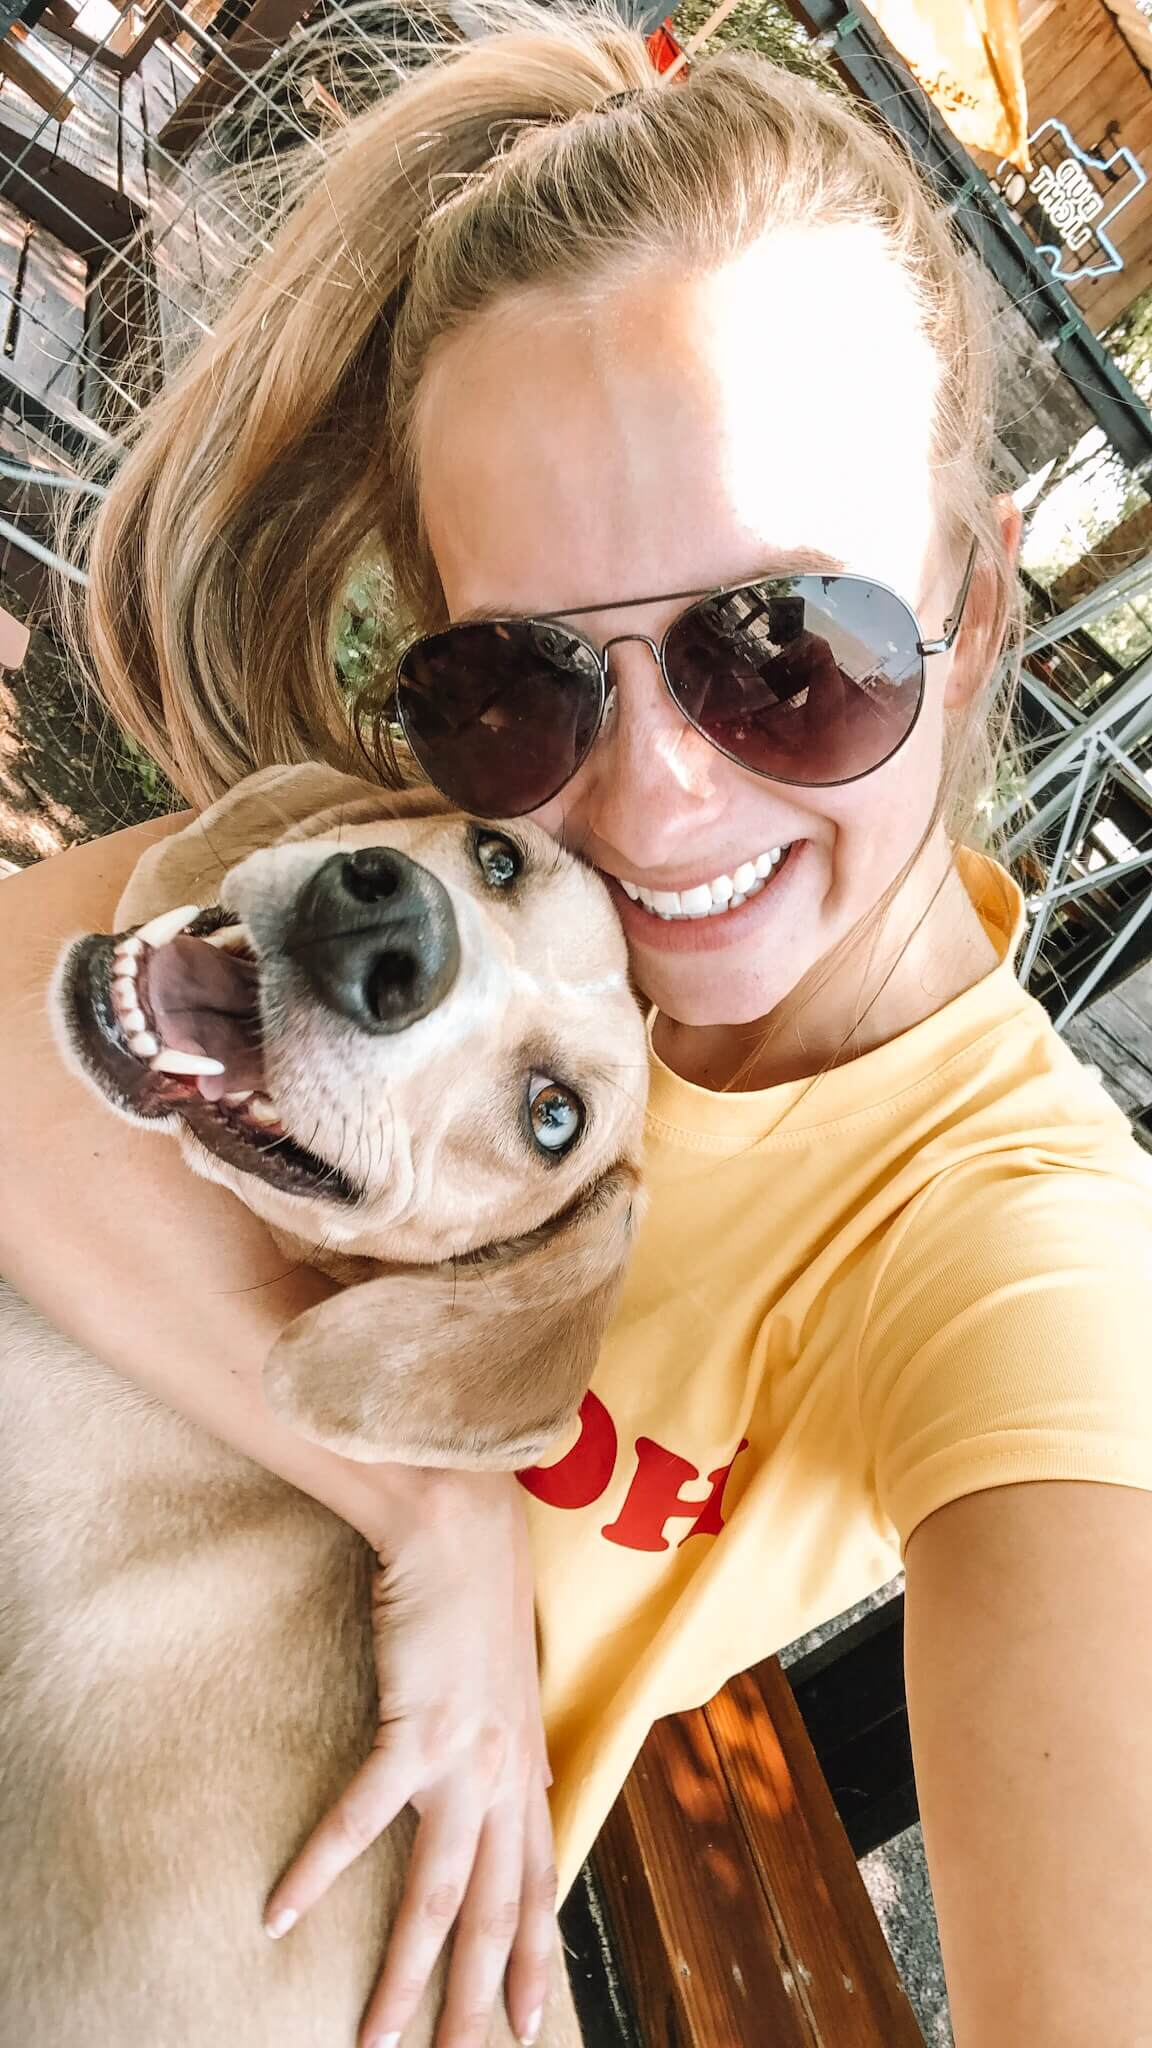 Dog Friendly Houston Guide - The Blonder Life